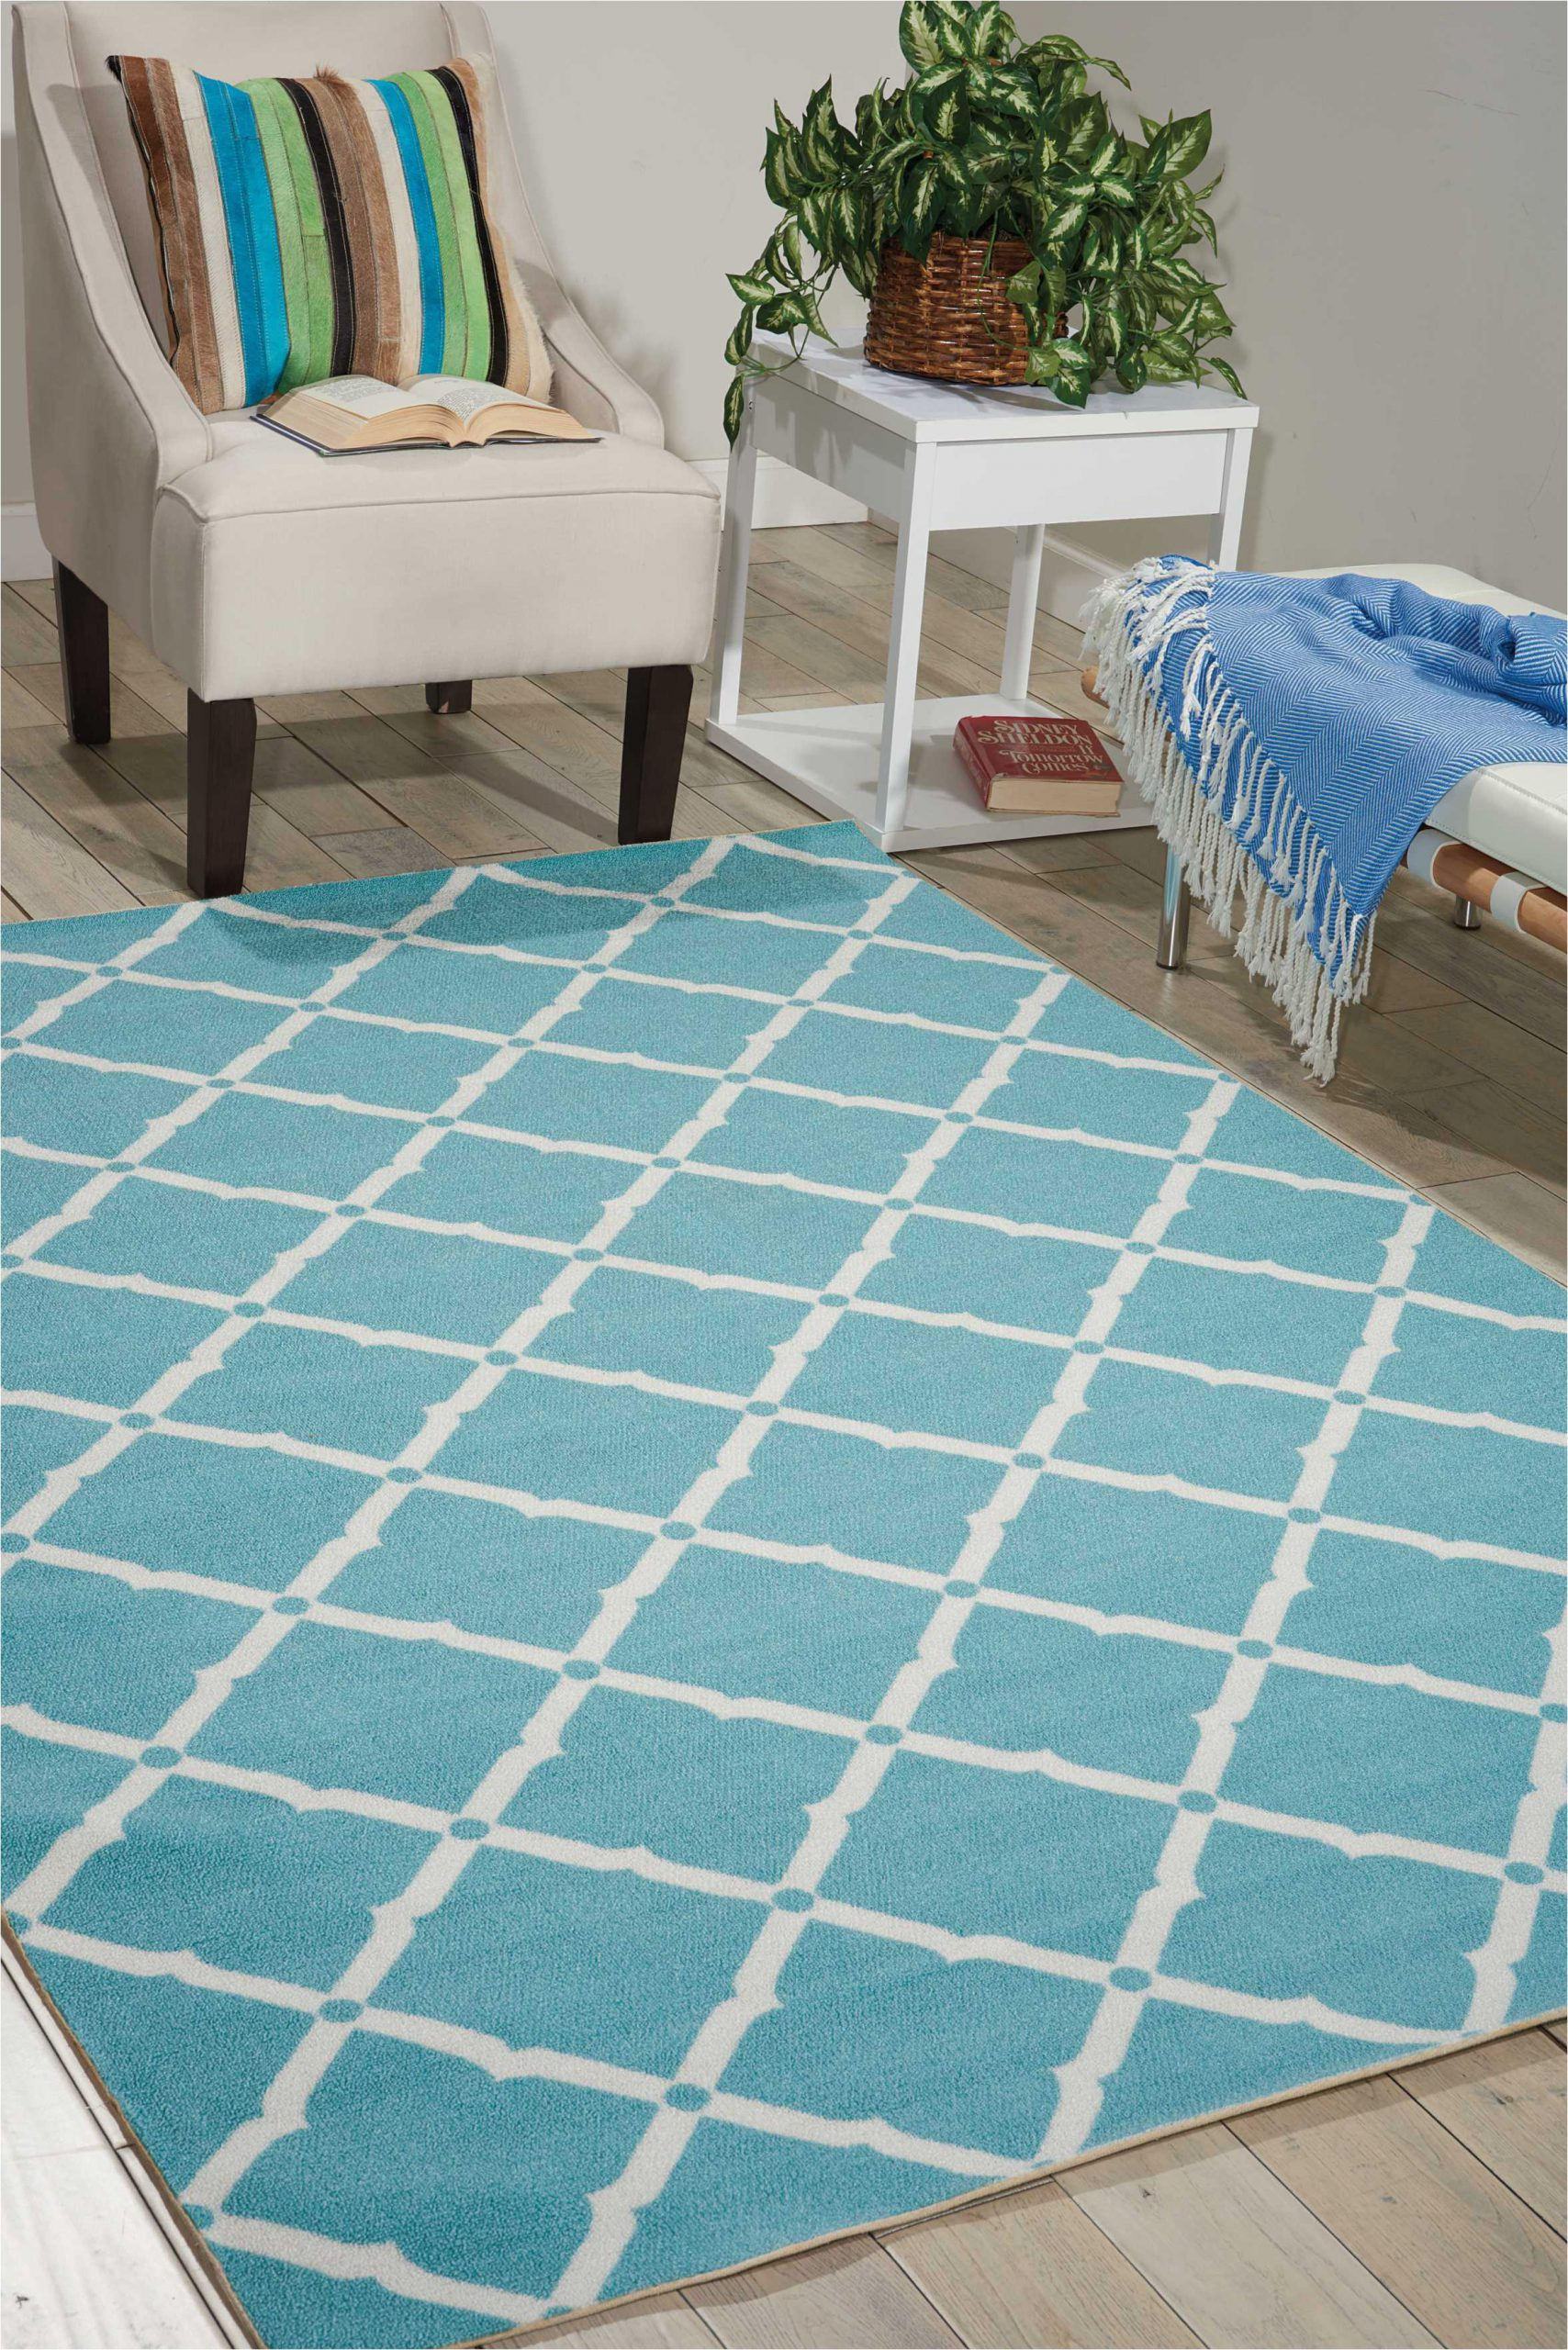 Home and Garden area Rugs Home and Garden Indoor Outdoor Aqua area Rug by Nourison Walmart